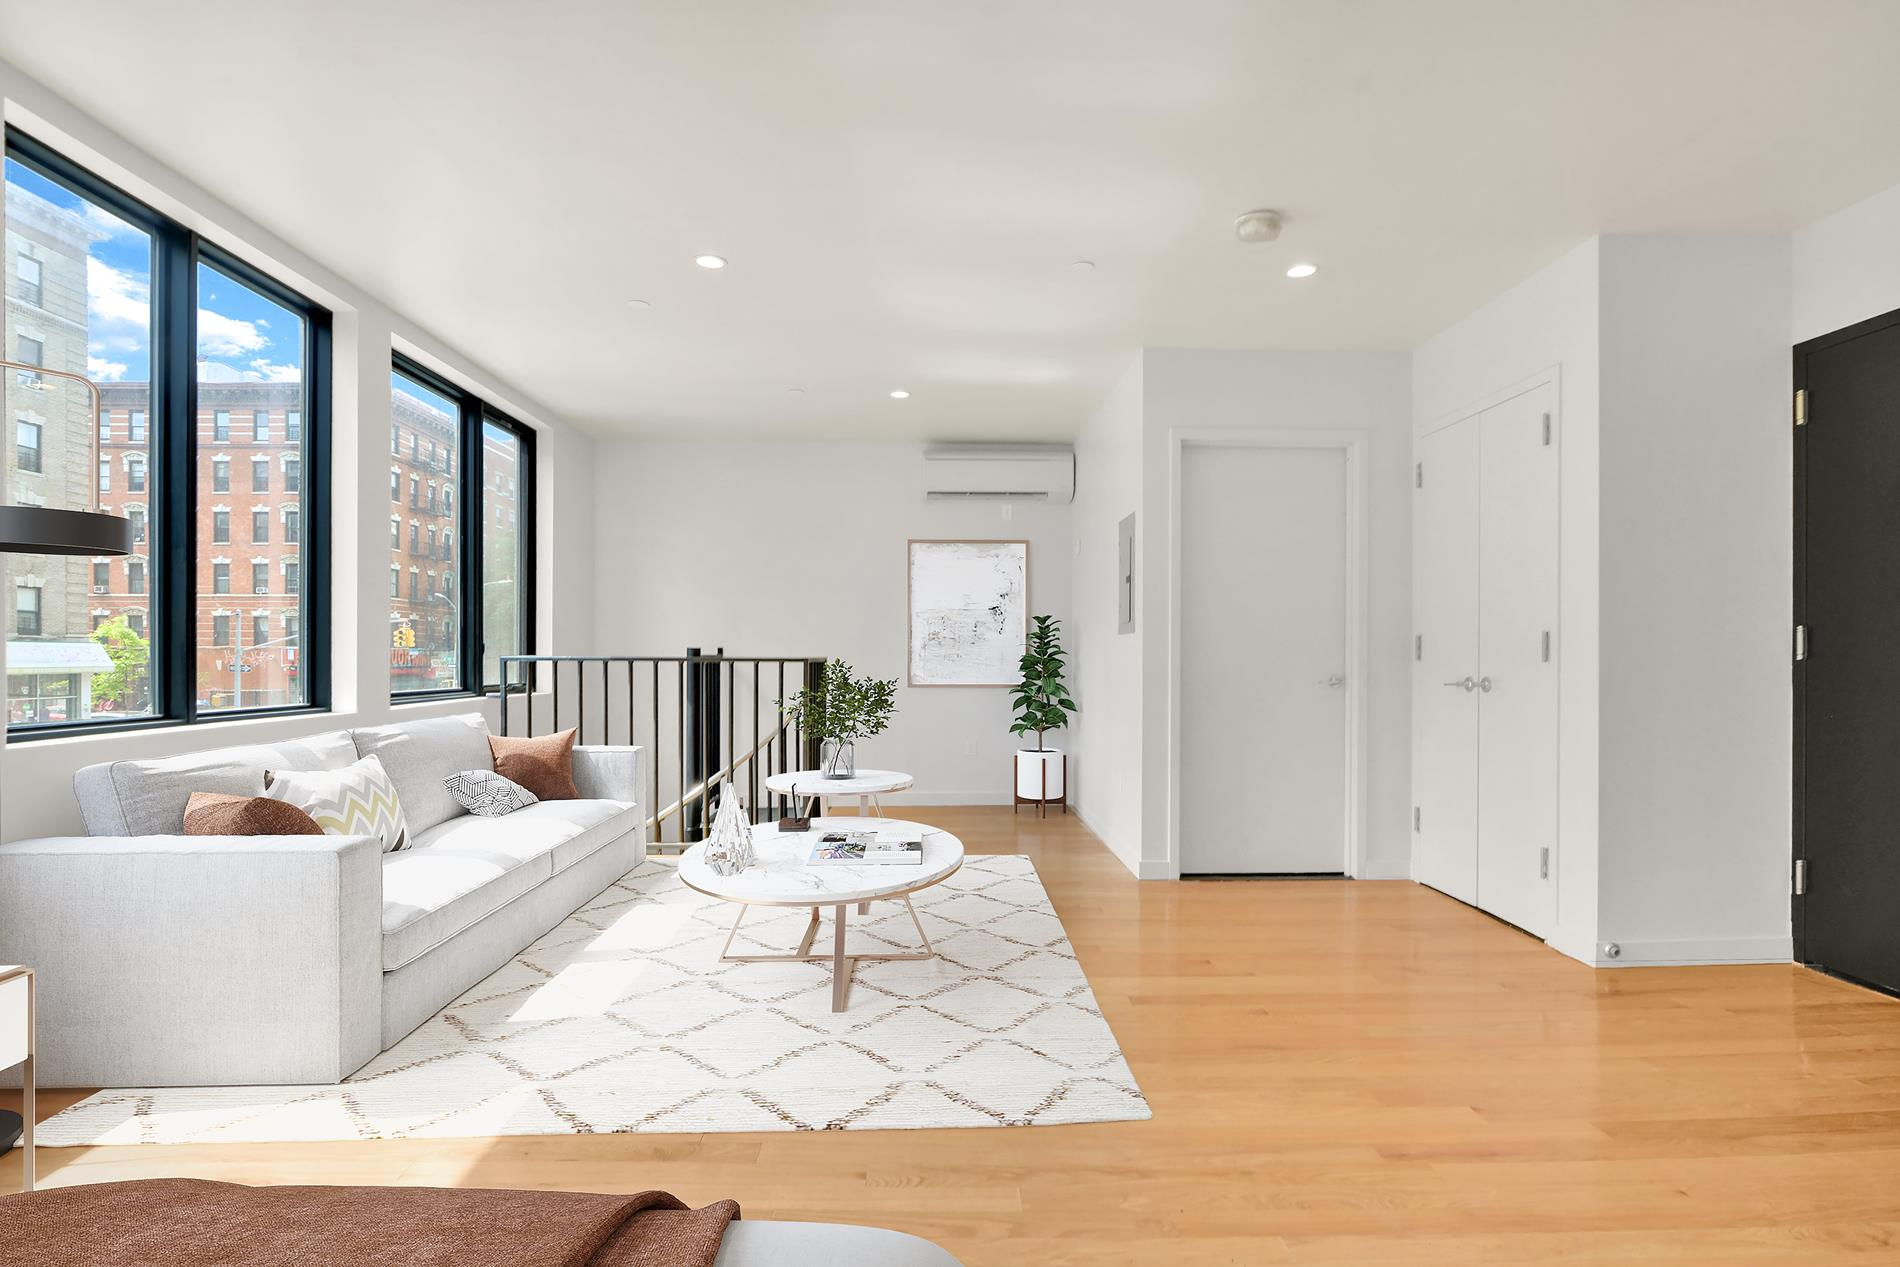 If the contract is signed in the next 45 days (until October 5th), the Sponsor will agree to pay two (2) years of property taxes upon closing as construction credit.Welcome to Be.live Harlem! This luxurious new development 1Br, 1 bath duplex boasts a stunning design and high quality finishes throughout: a spiral staircase, natural red oak hardwood flooring, Pella windows and doors, central air conditioning, washer and dryer. The kitchen is finished with custom cabinetry, Berrtazoni appliances, arctic white quartz countertops, and matte black hardware. The modern bathroom is equipped with oversized frameless glass shower stalls and accented by black porcelain tile.Amenities include a virtual doorman, keyless entry, bike storage, common furnished patio & a fitness center with the latest Peloton equipment.Conveniently located, Be.Live is 1.5 block aways from the B & D train at the 155 train station and the M10 bus stop is right outside of the building. Just 1 block away you will find Citi bikes, Jackie Robinson Park, the USPS postal office, delicatessens, and places of worship. Be.Live is located 1 train stop away from Yankee Stadium and has easy access out of New York city via the Henry Hudson Parkway and Harlem River Drive.